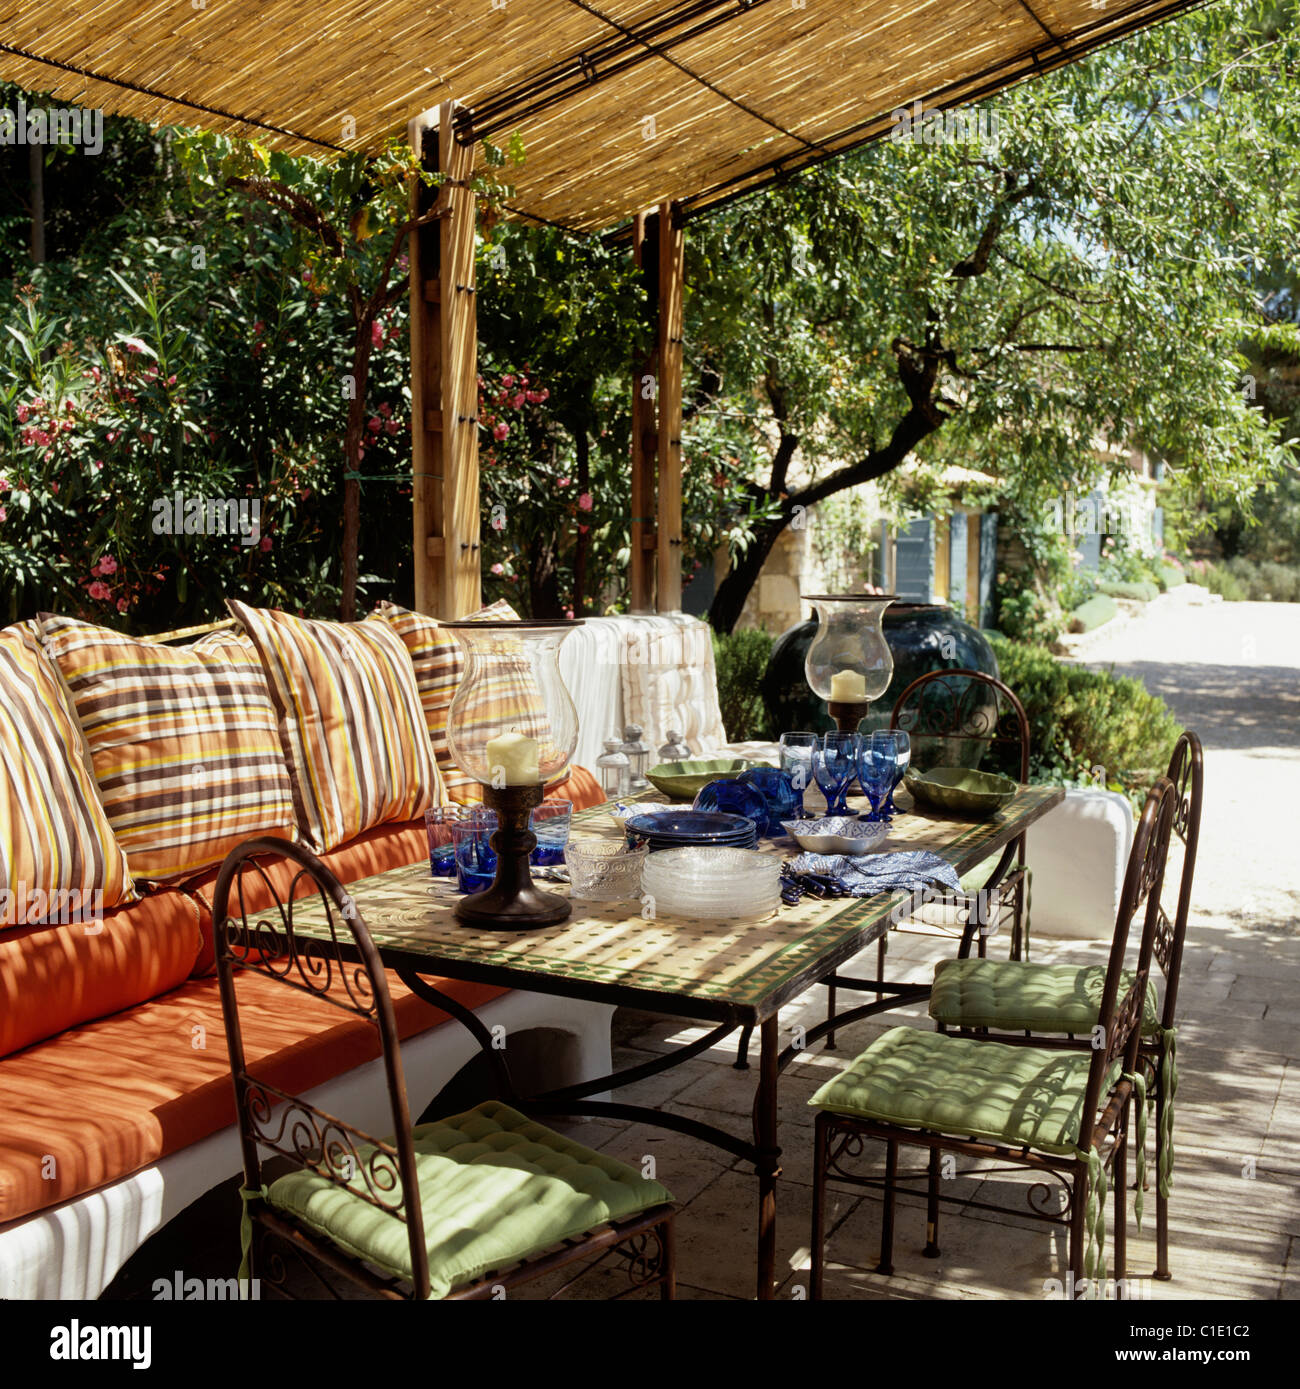 Outdoor furniture under a bamboo awning on terrace of ...